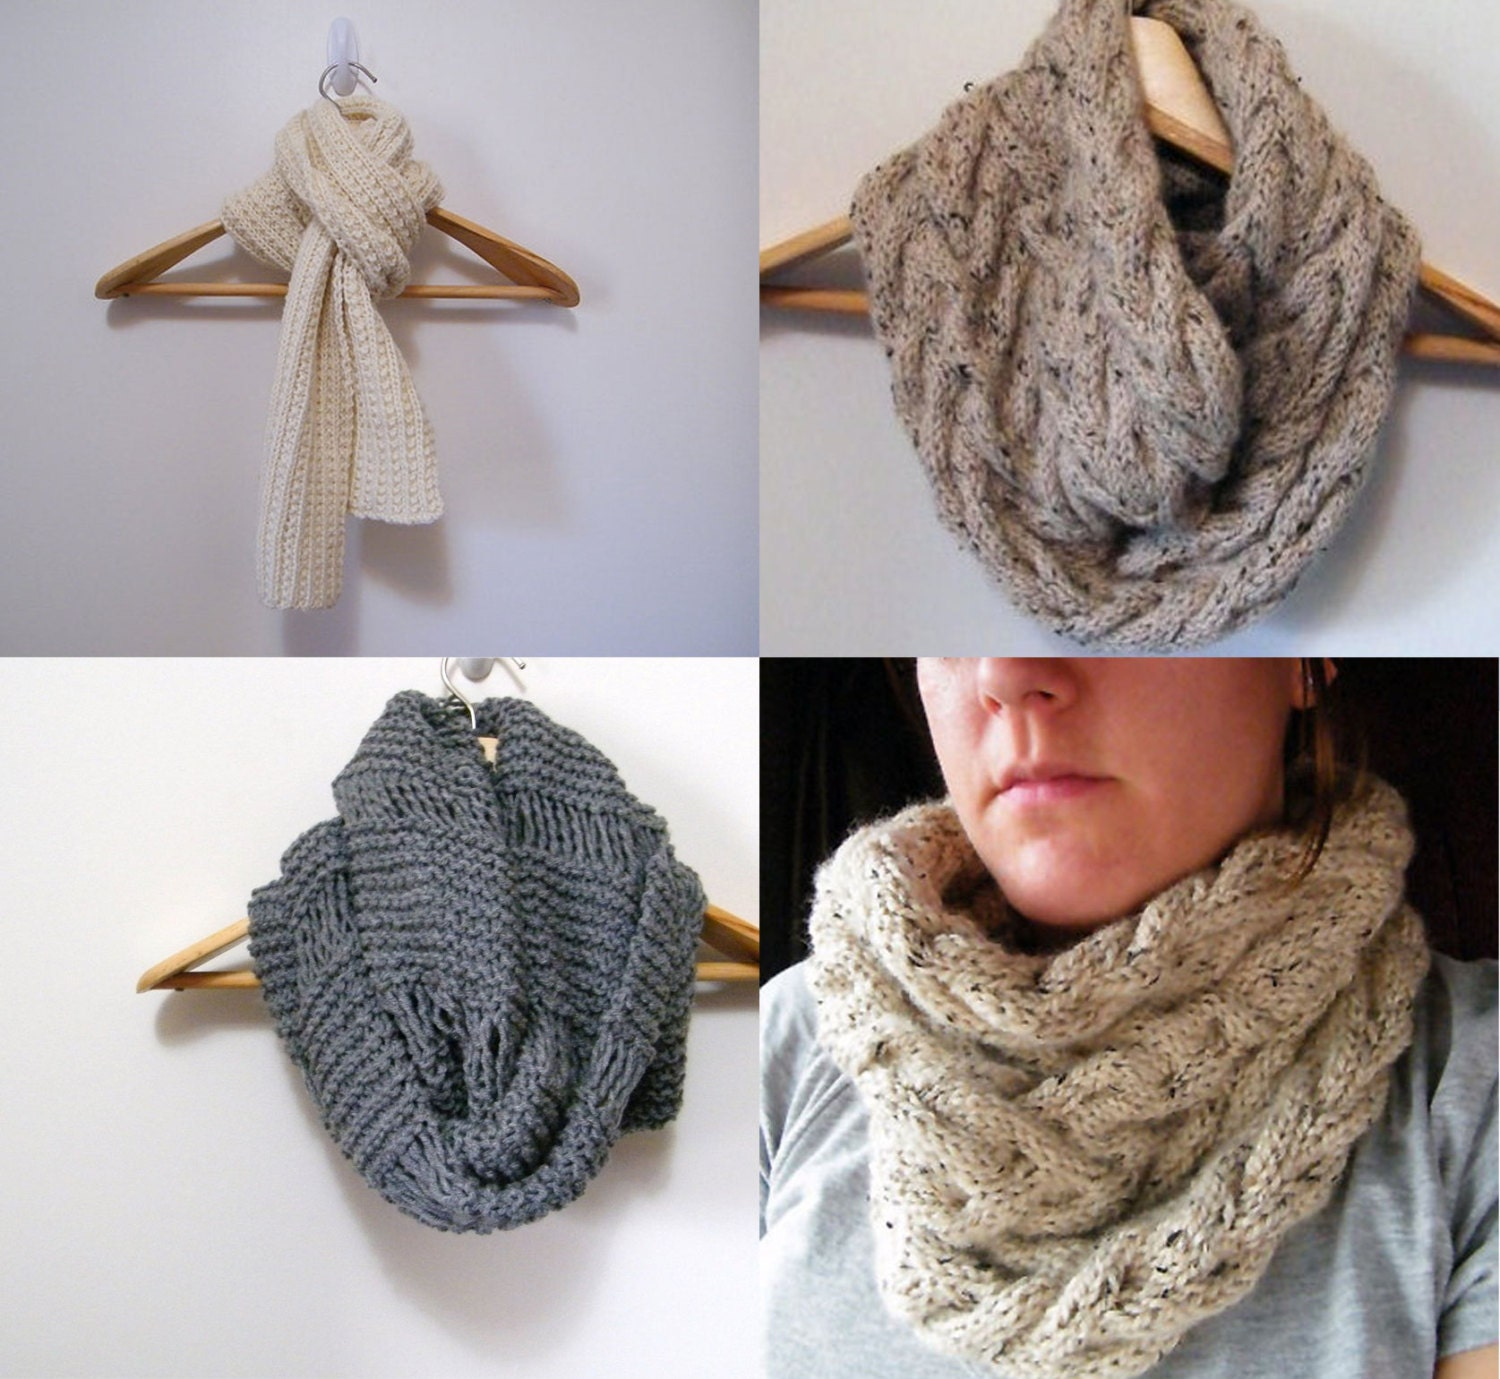 3 Knitting Pattern Cable Cowl Infinity Scarf by LewisKnits